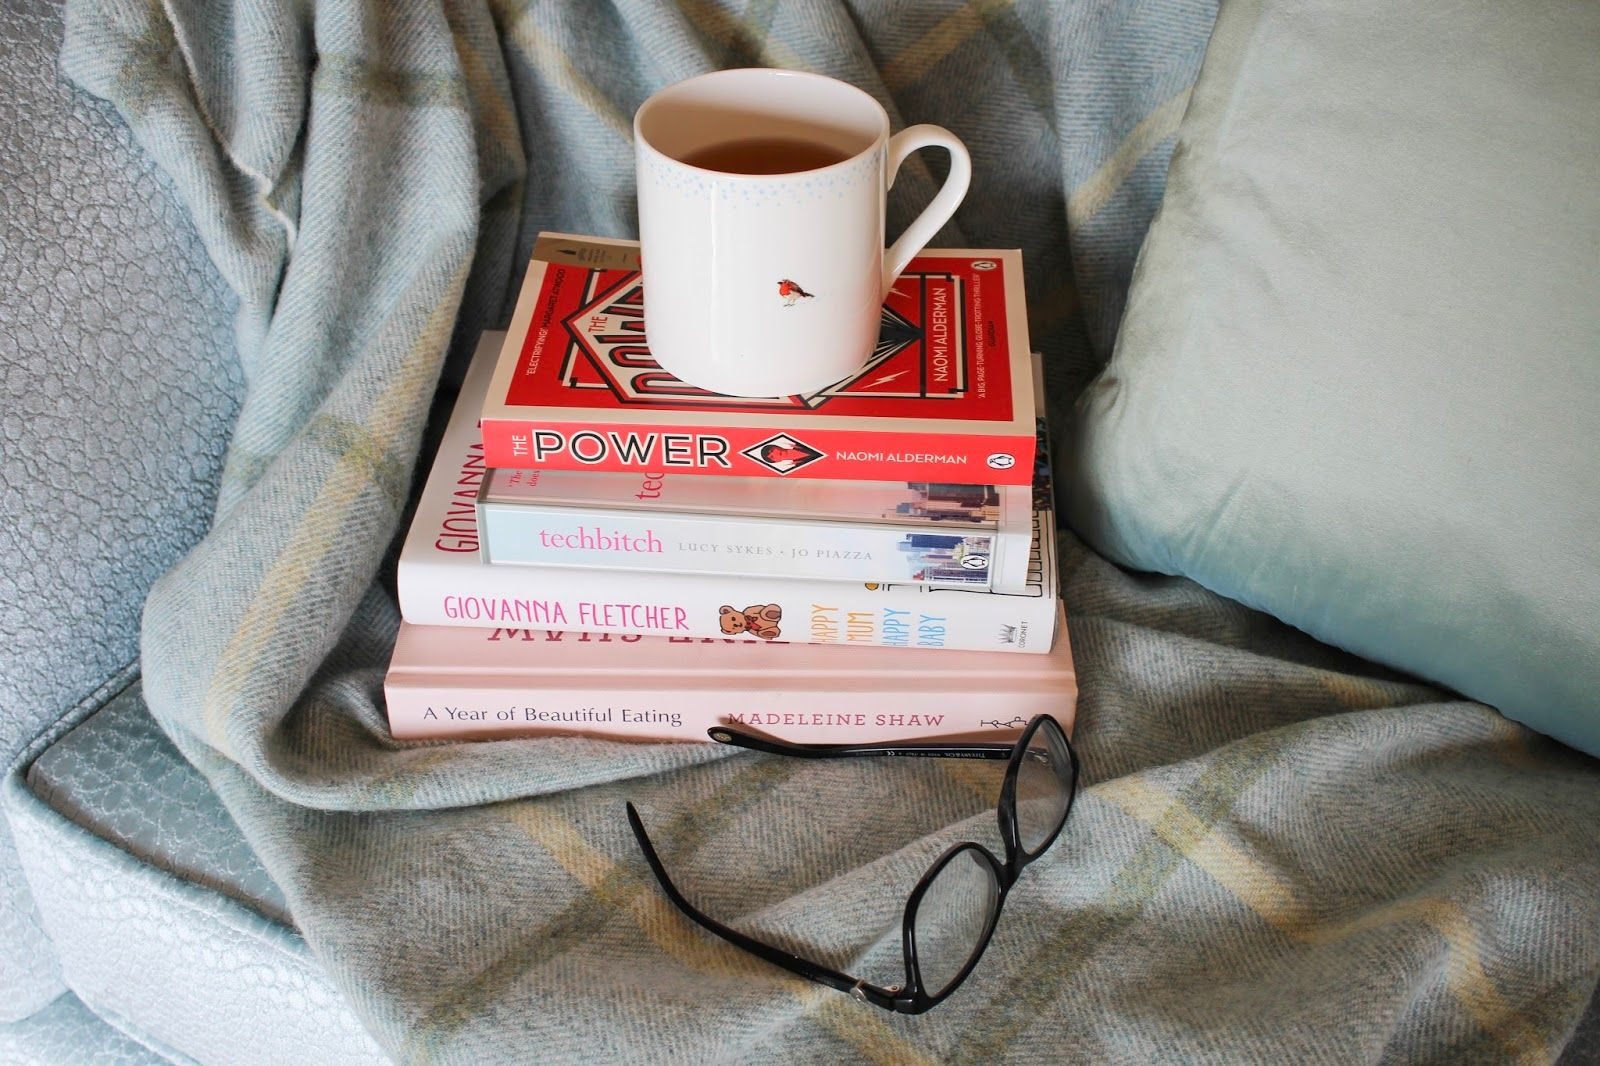 As Autumn approaches, this book haul will keep you snuggled up and entertained as the evenings draw in. Madeleine Shaw, Giovanna Fletcher and Paige Toone (to name a few!)